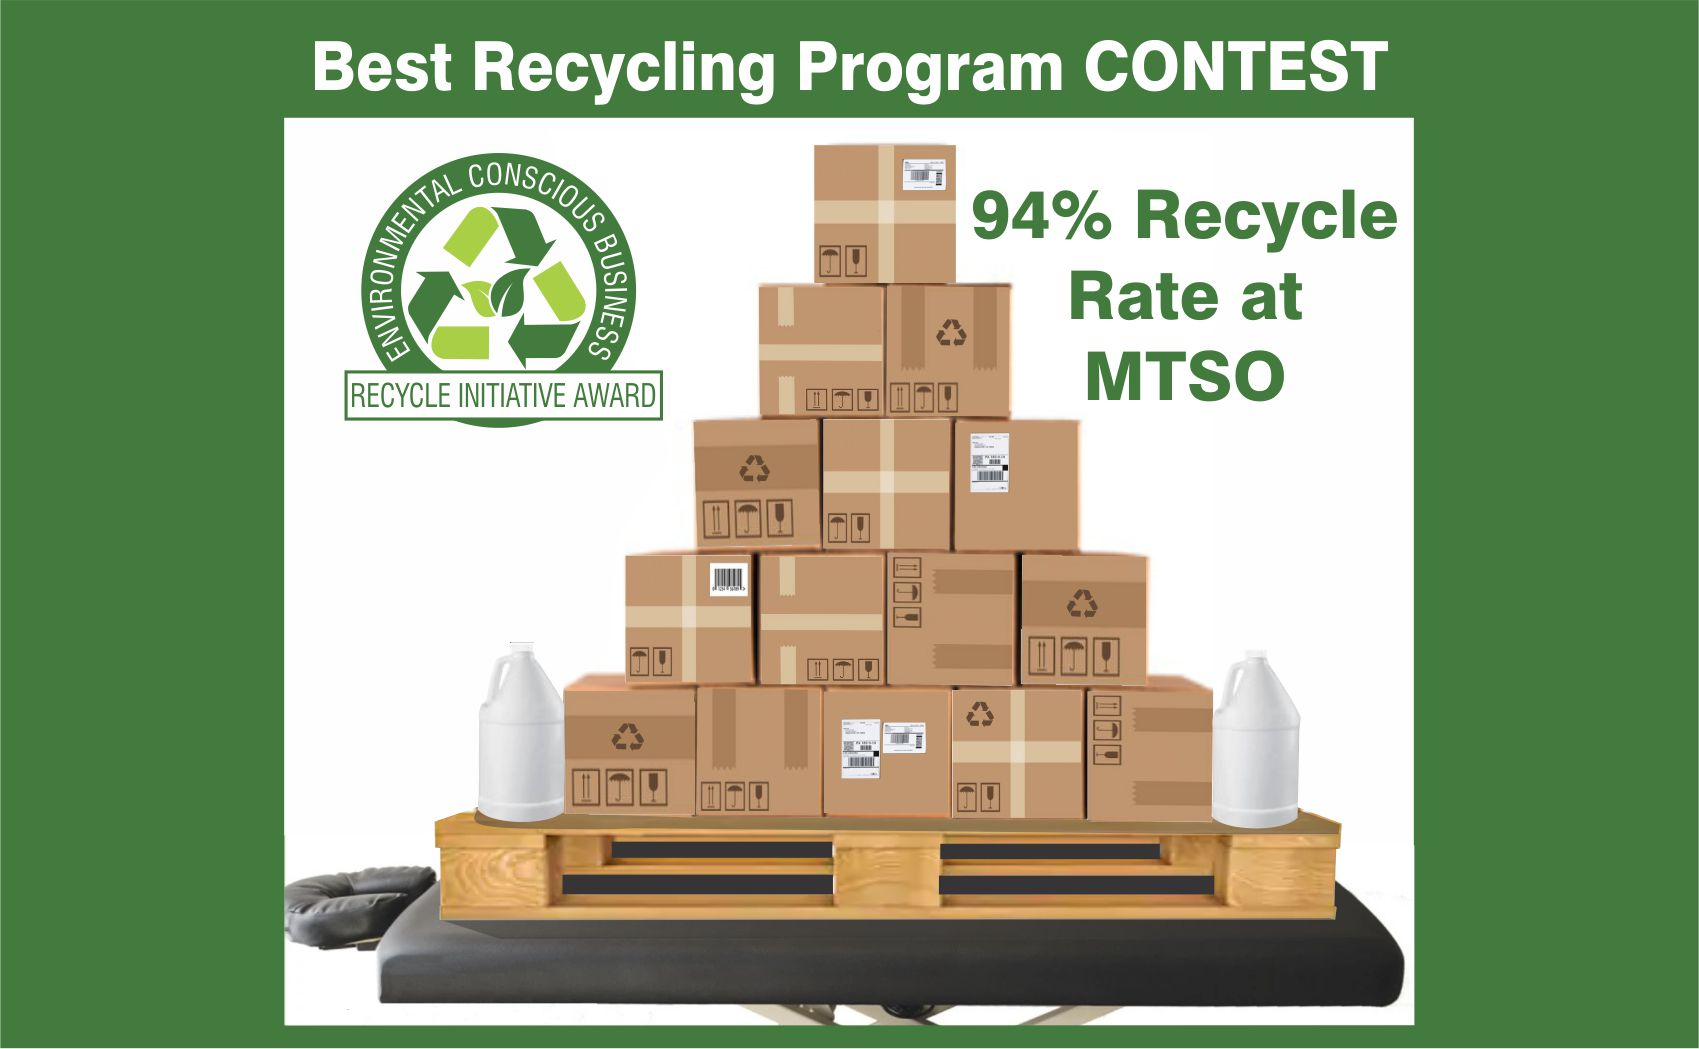 Best Recycling Program Contest